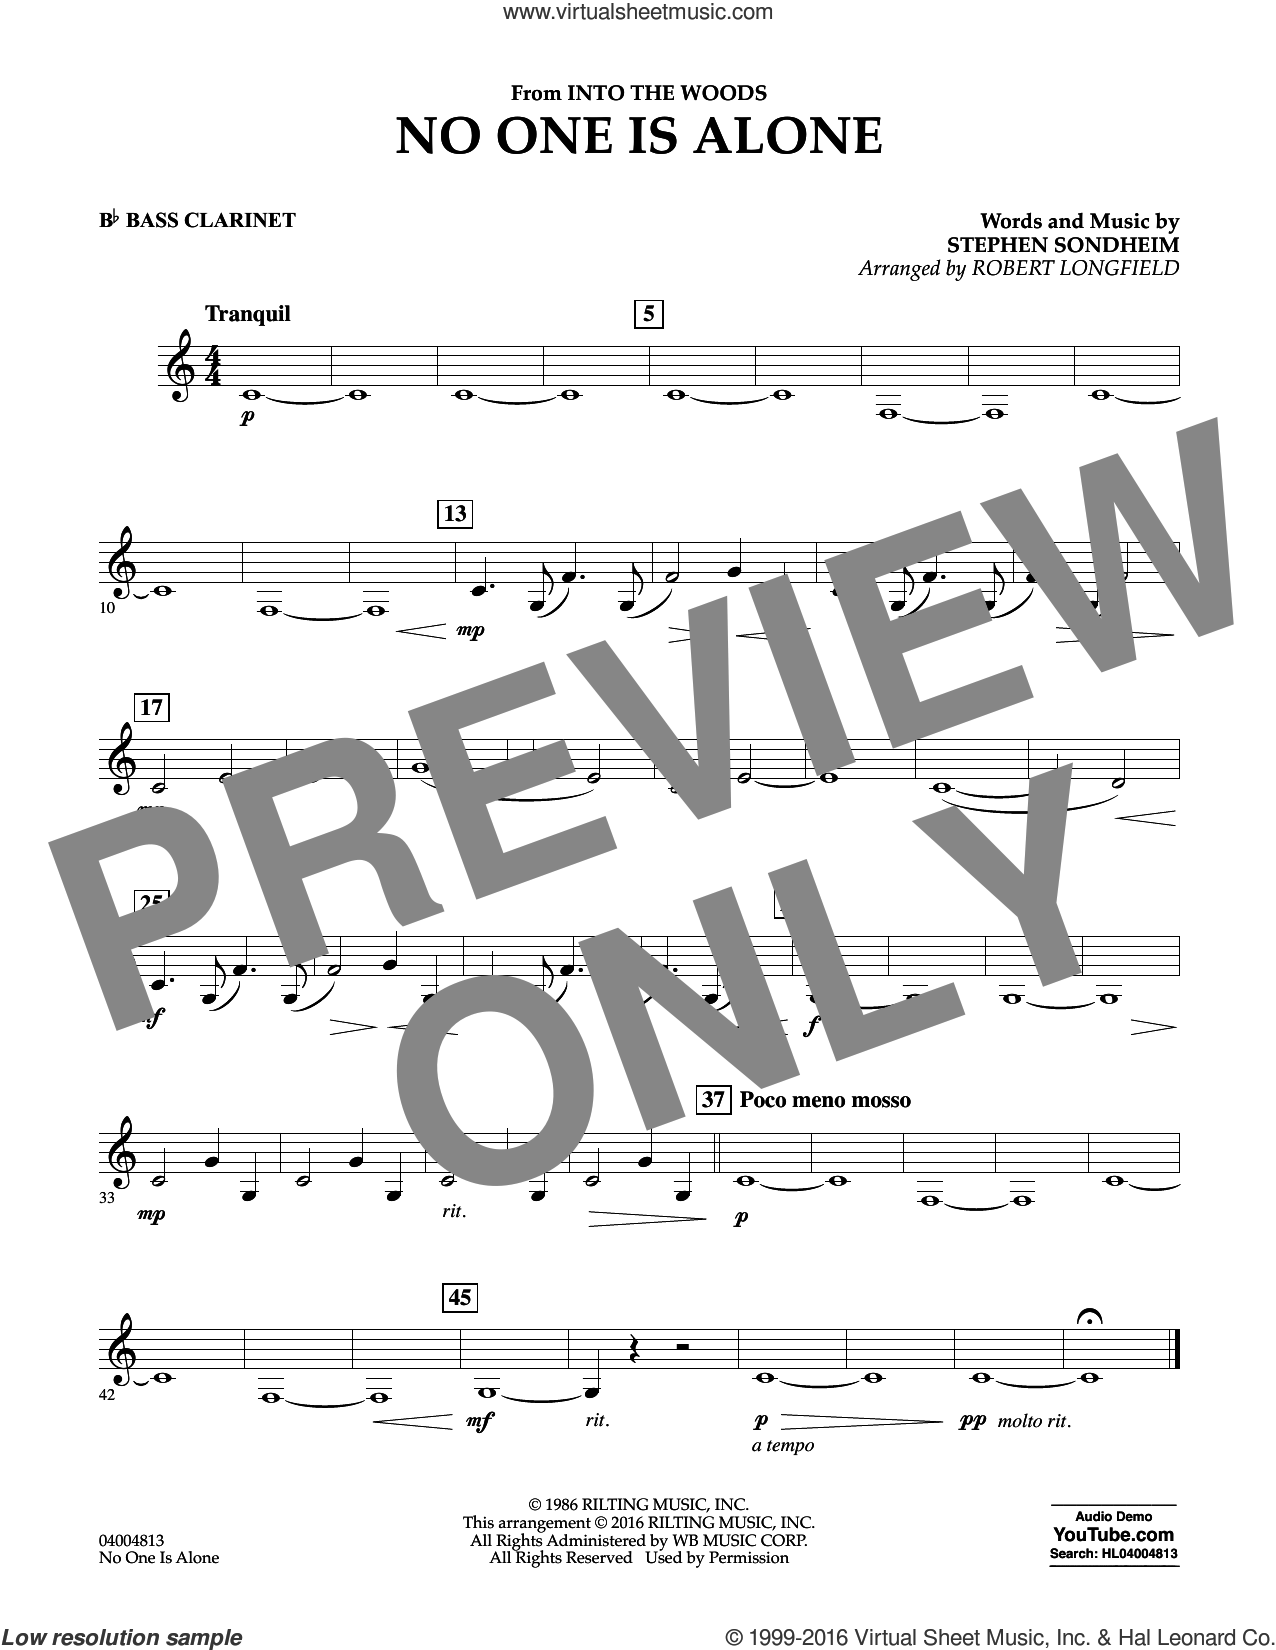 No One Is Alone sheet music for concert band (Bb bass clarinet) by Stephen Sondheim and Robert Longfield, intermediate skill level